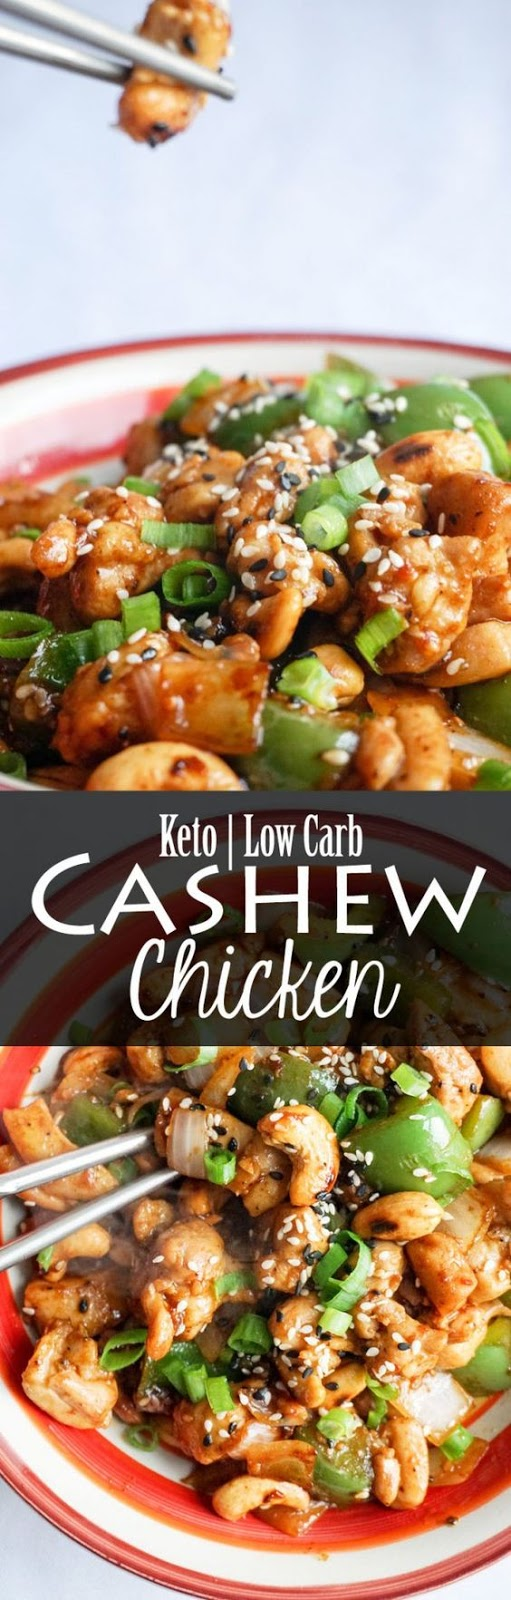 Easy Cashew Chicken ready in under 15 minutes. Keto + Low Carb!